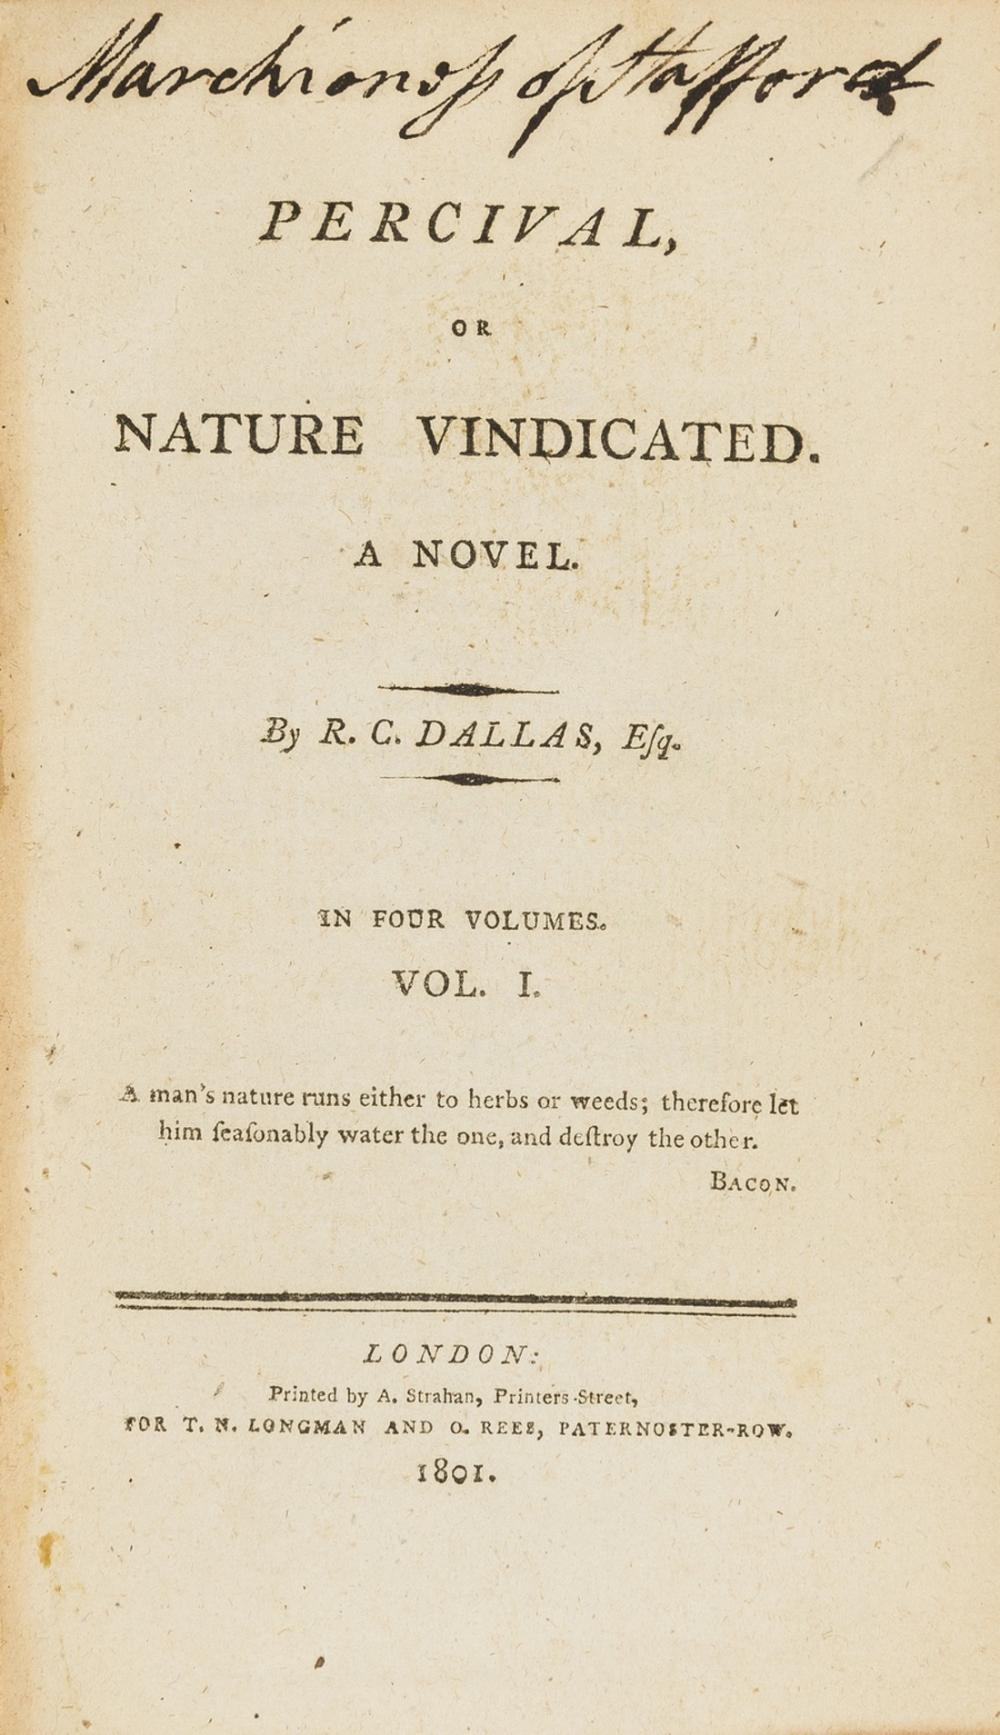 Dallas (Robert Charles) Percival, or Nature vindicated, 4 vol., 1801; ; Aubrey: a Novel, 4 vol., 1804, first editions of Dallas's first and second novels.  (8)